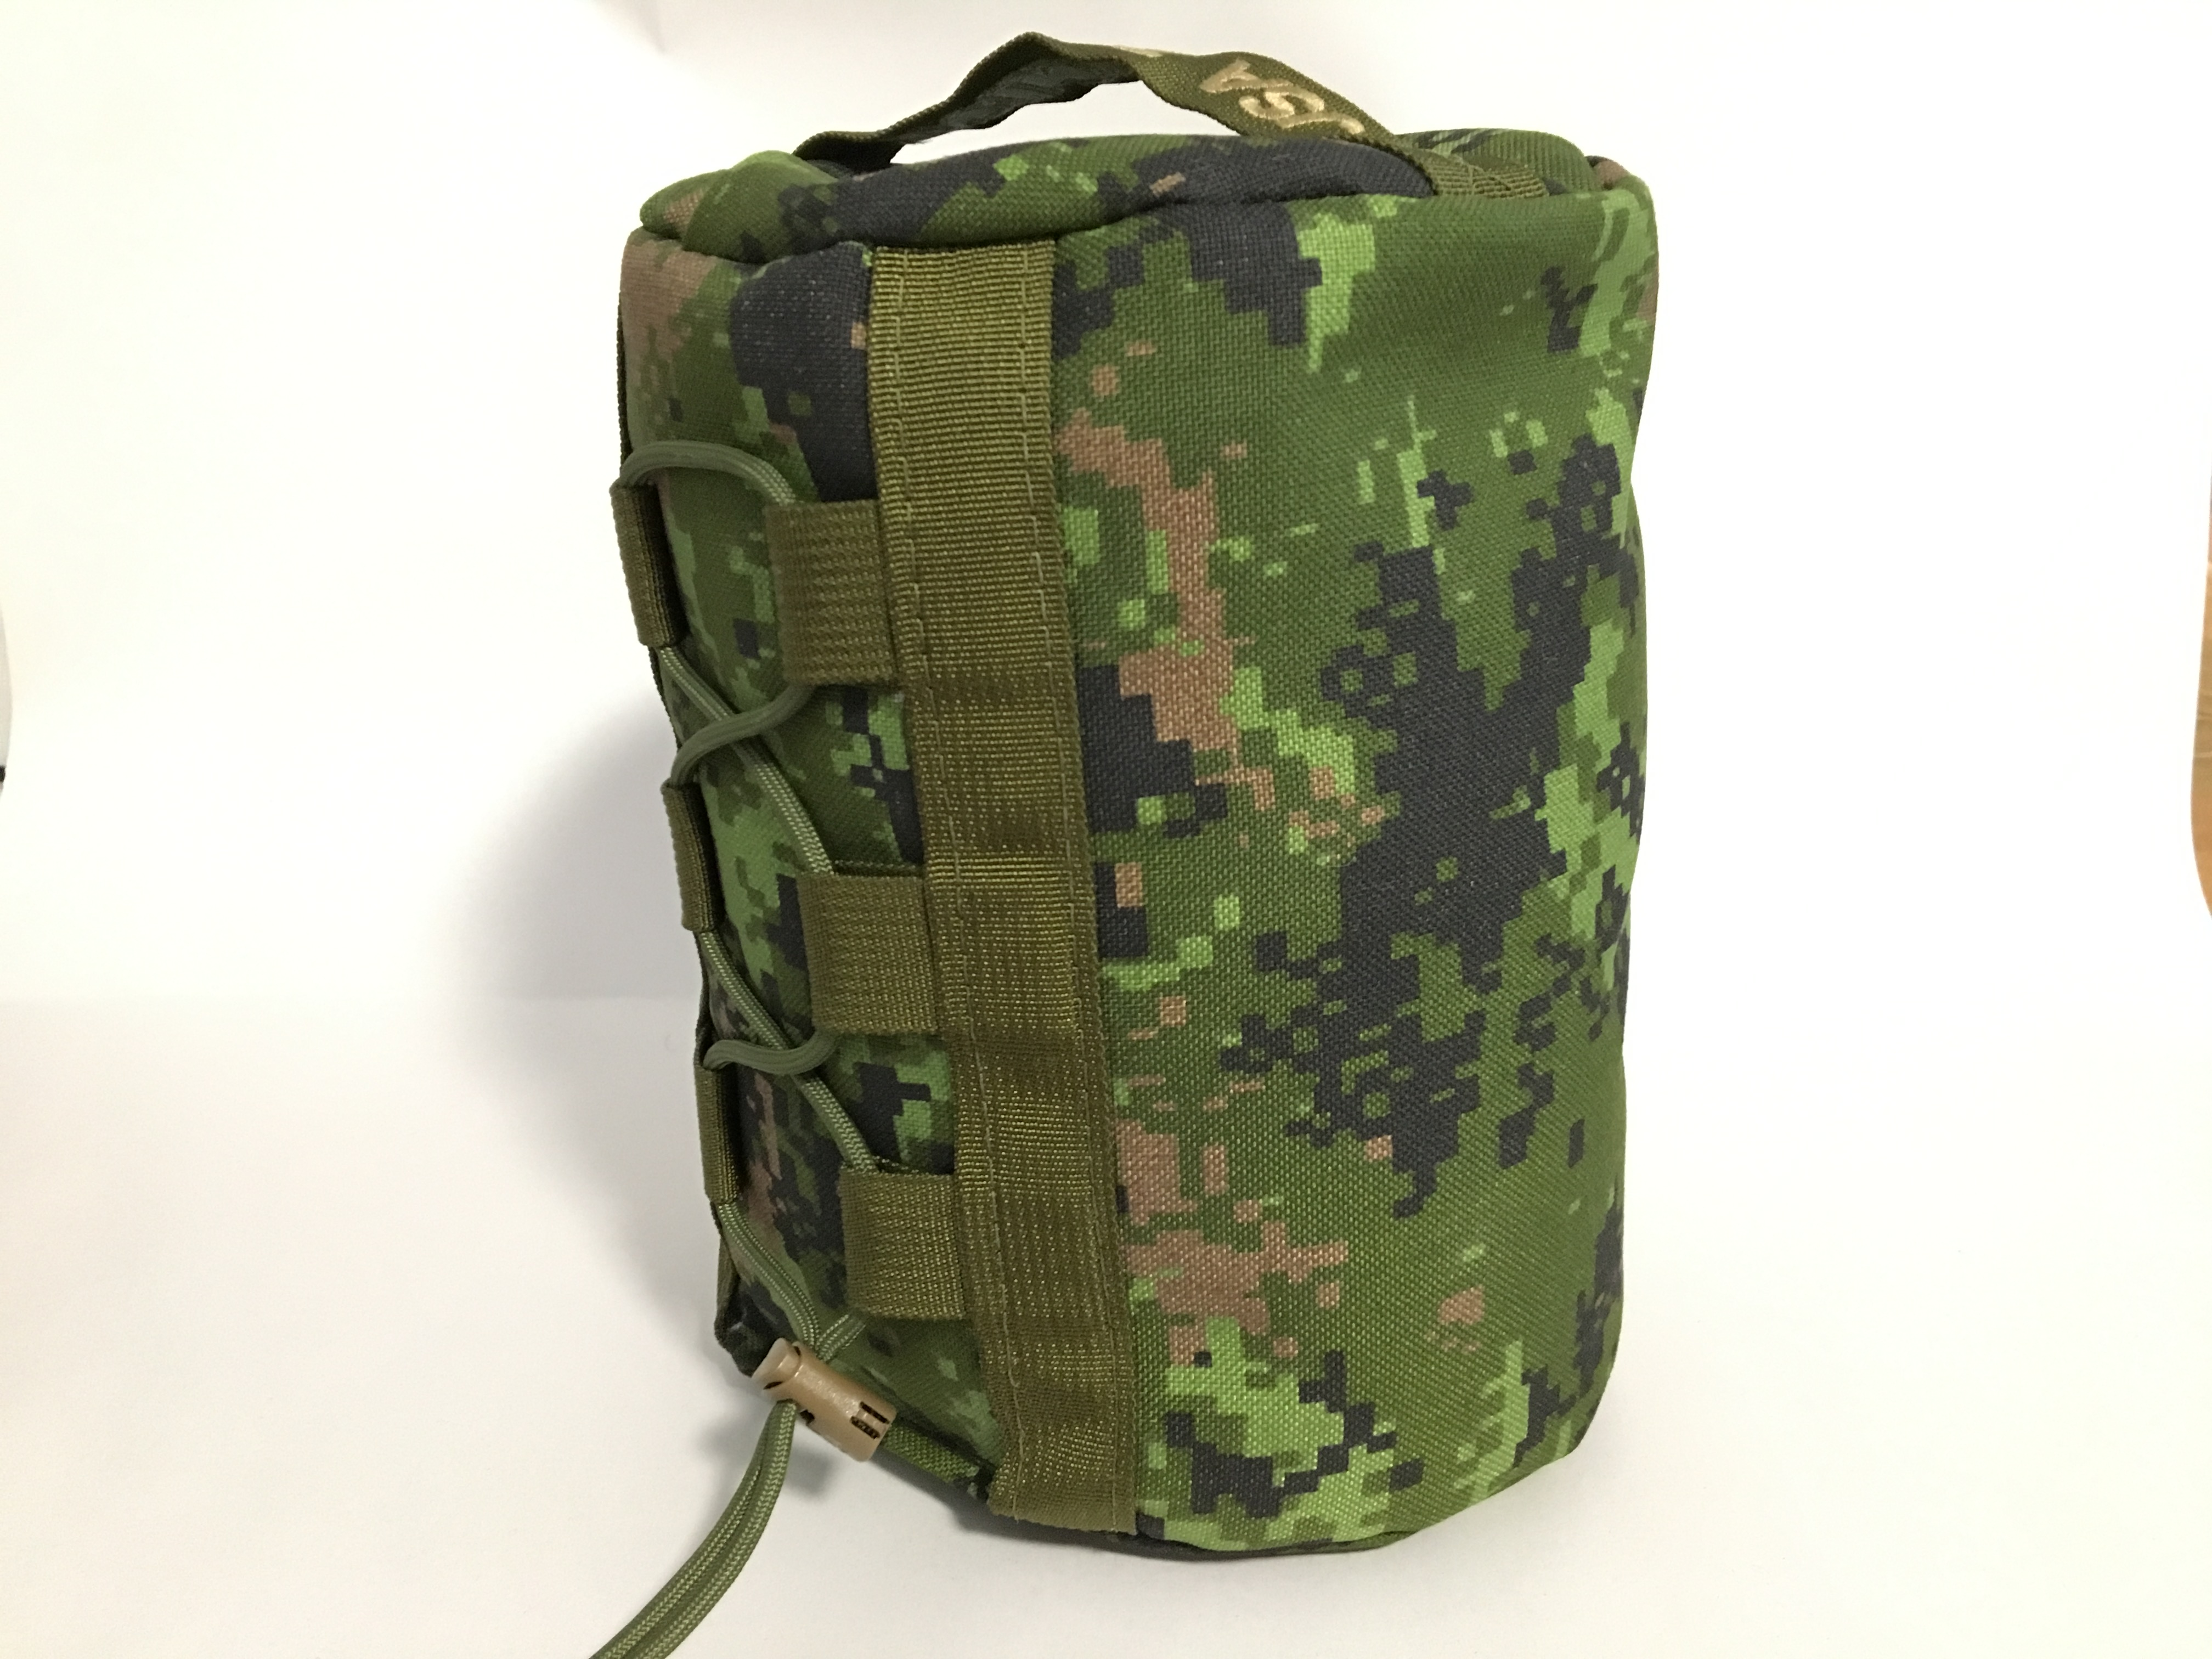 JSA Tactical - Shooting Bag Large - Cadpat